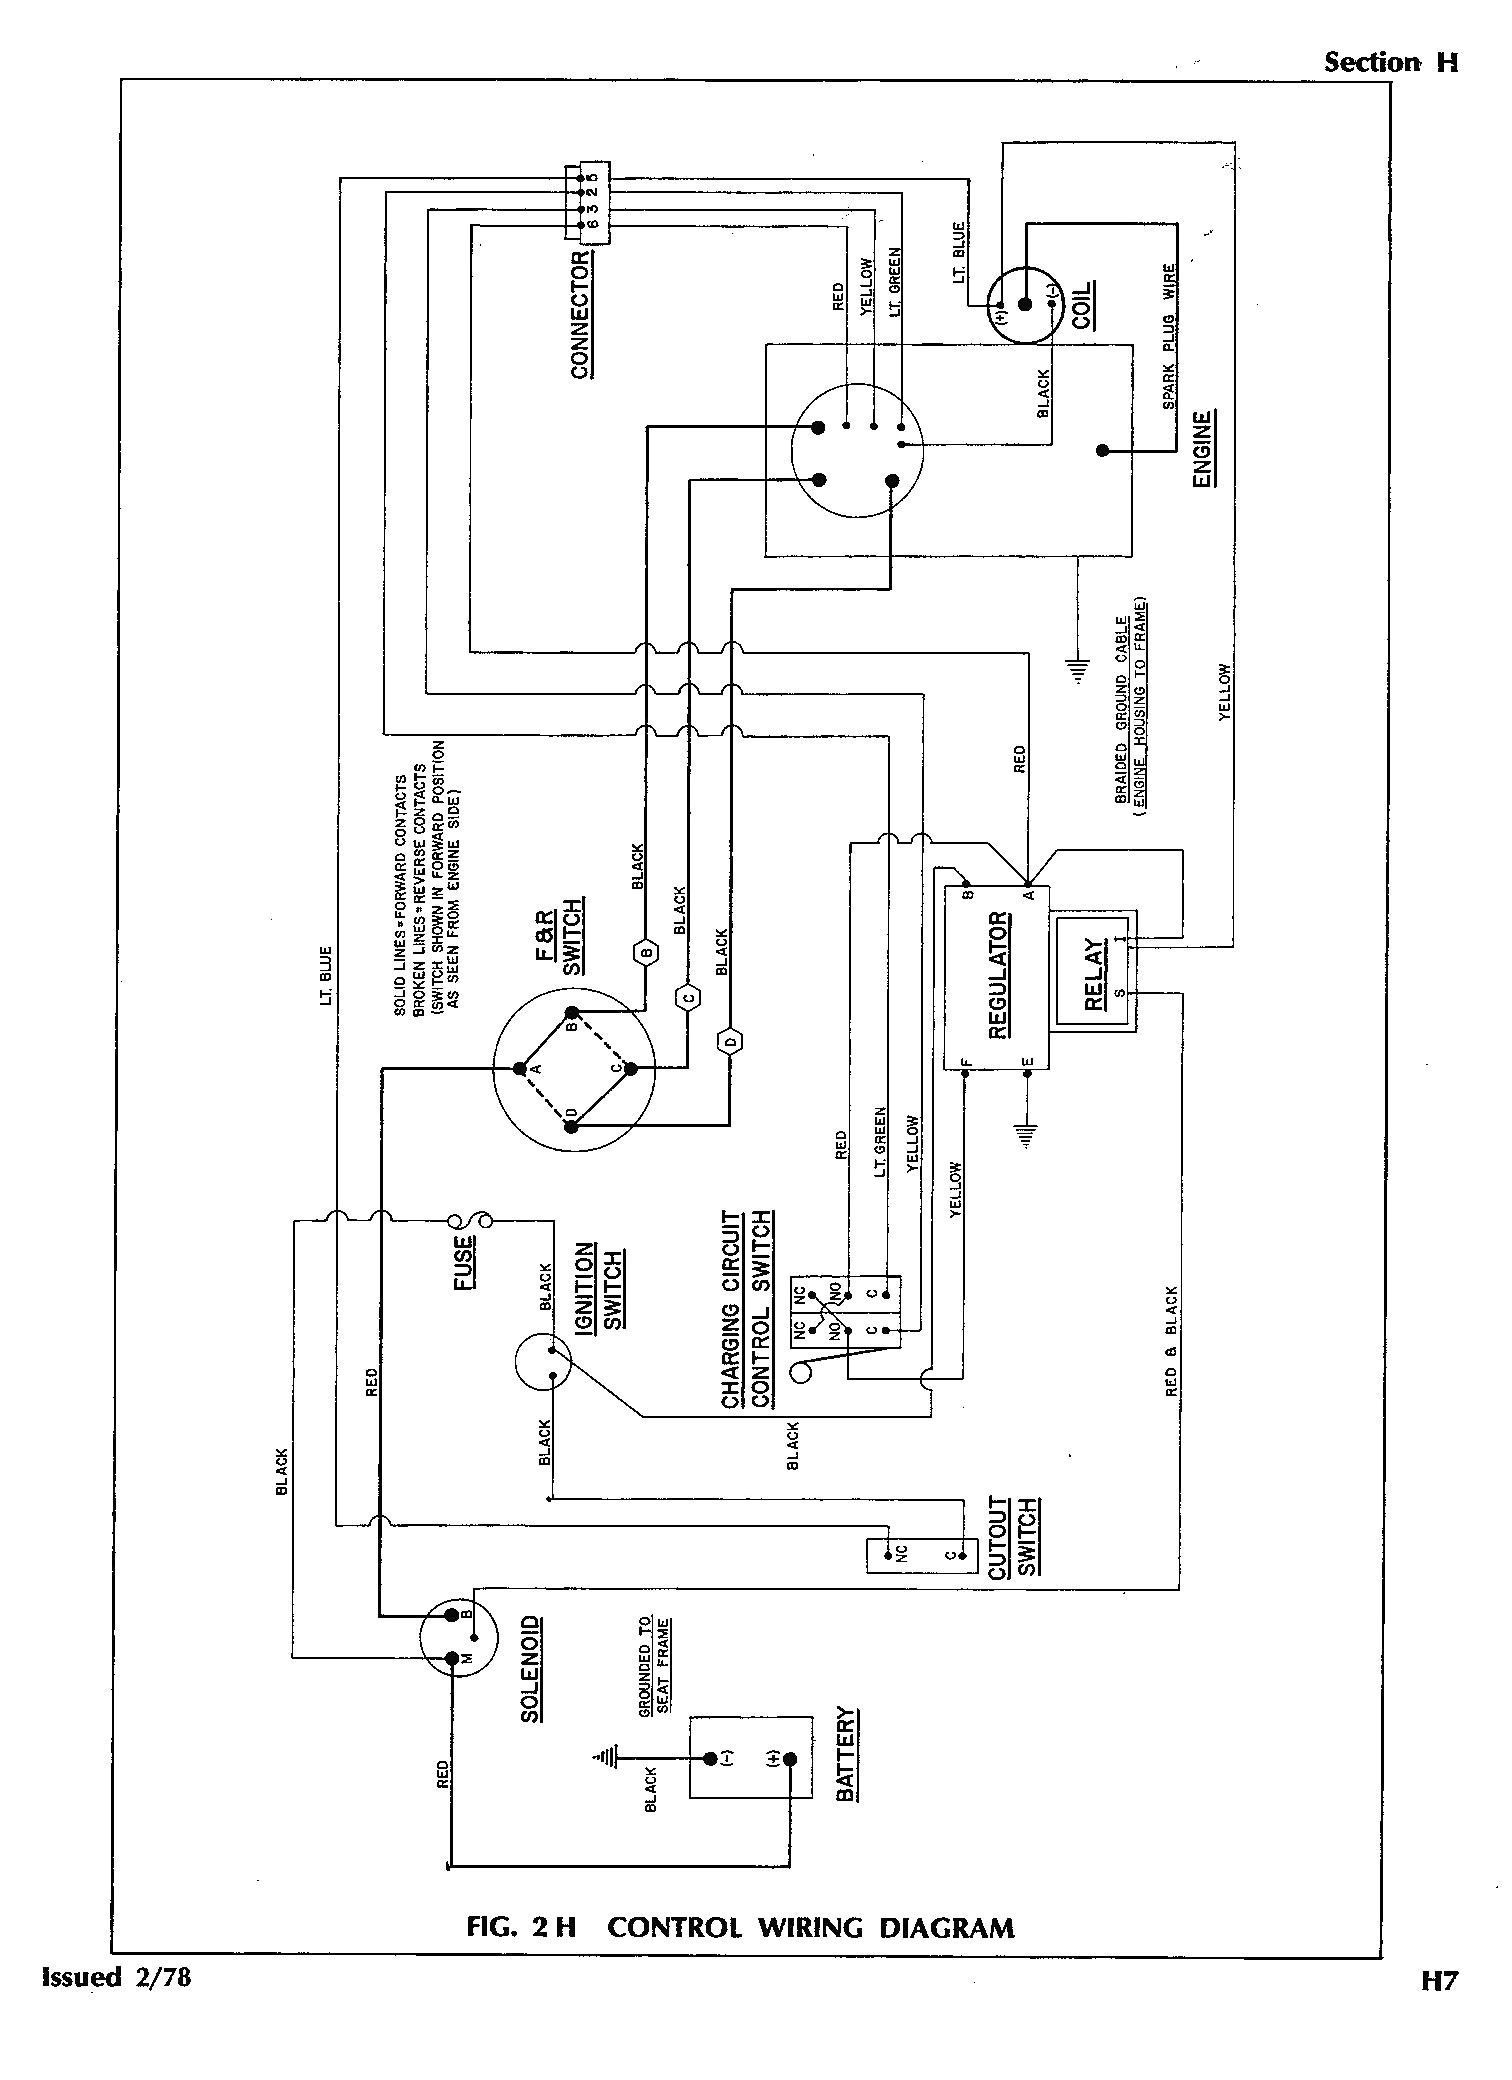 ez go golf cart wiring diagram gas engine (with images) | club car ... 2002 ezgo gas wiring diagram txt ezgo ez go gas golf cart wiring diagram pdf pinterest